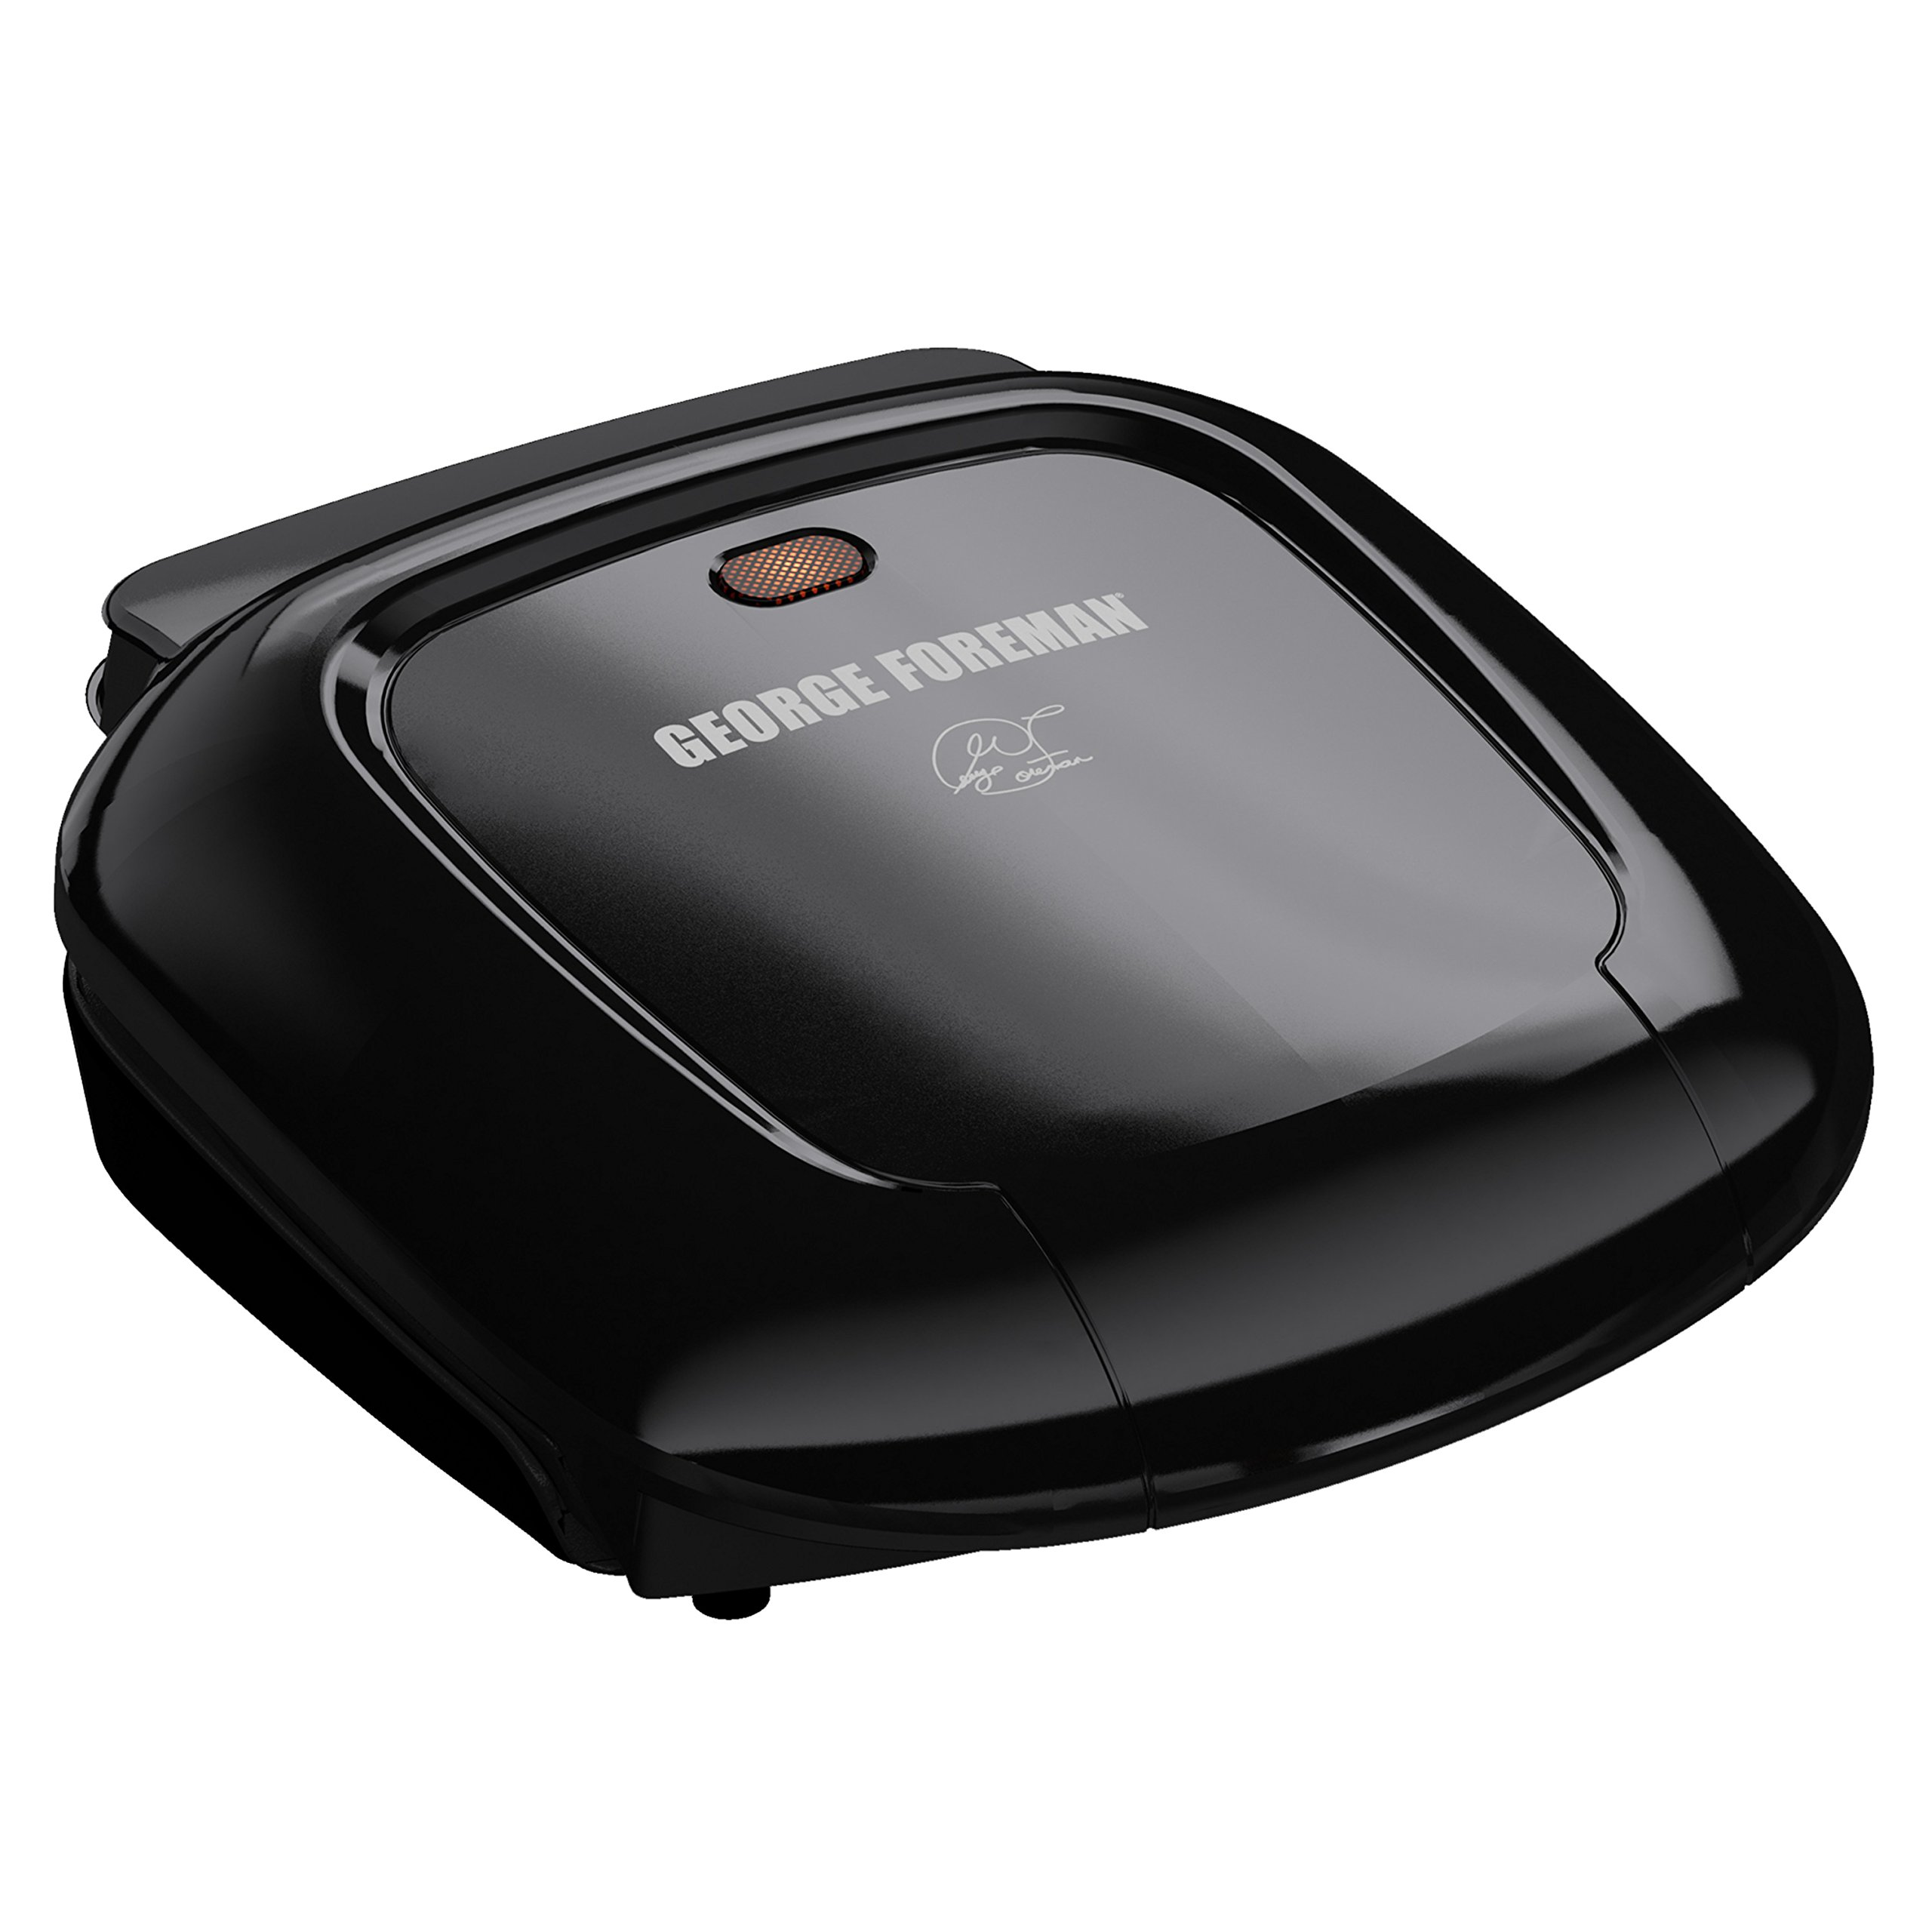 George Foreman GR0040B 2-Serving Classic Plate Grill, Black by George Foreman (Image #5)